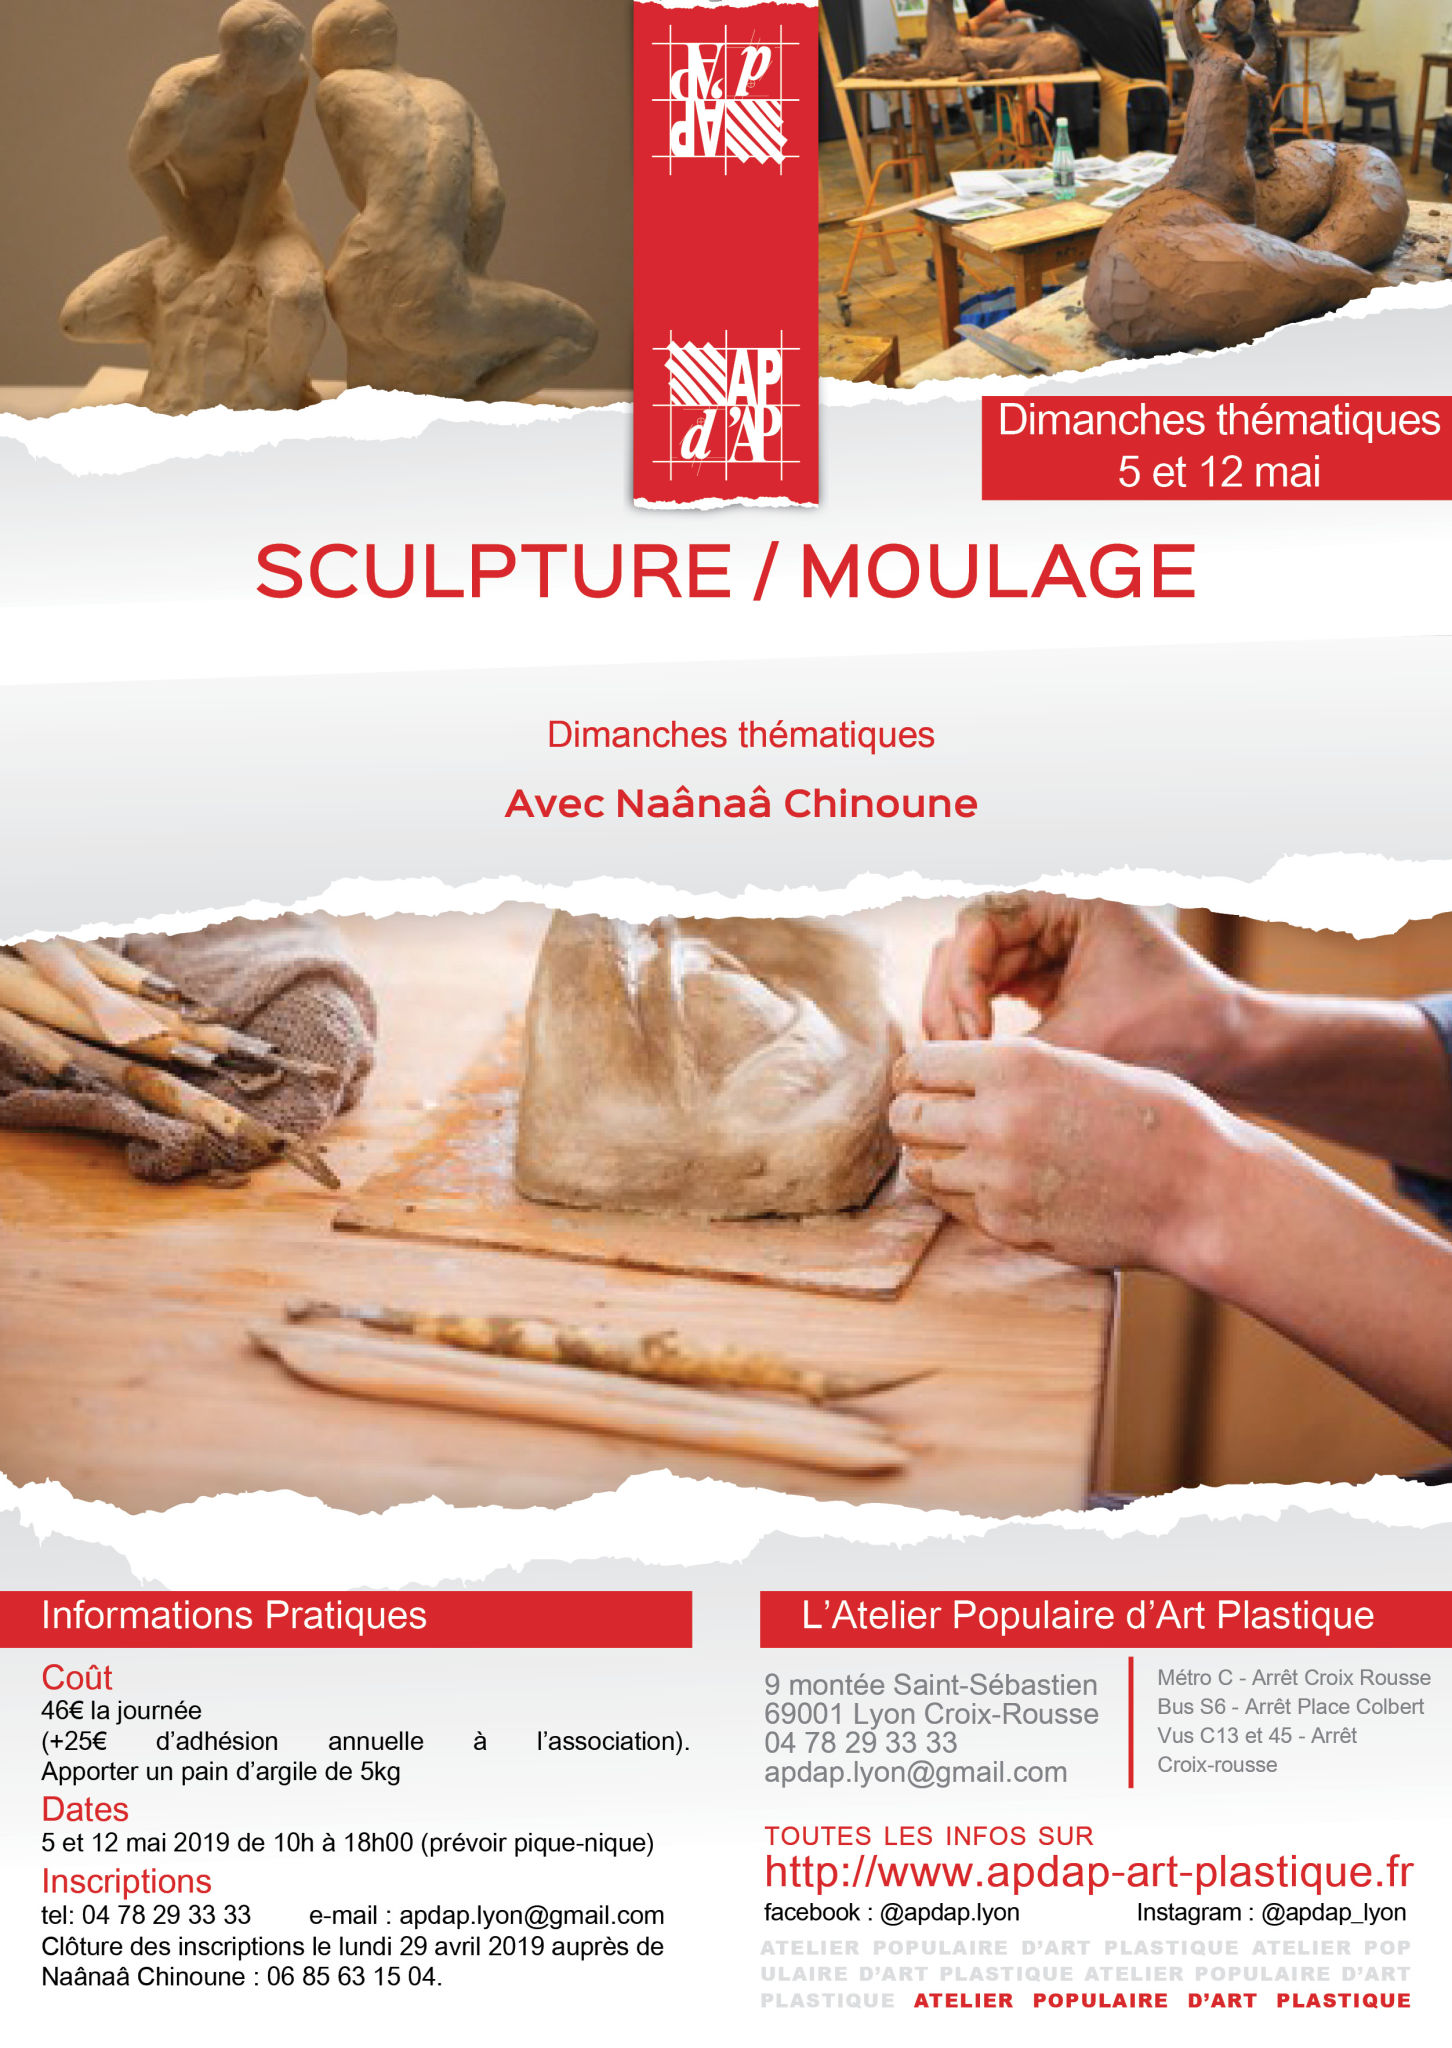 Sculpture-moulage mai 2019